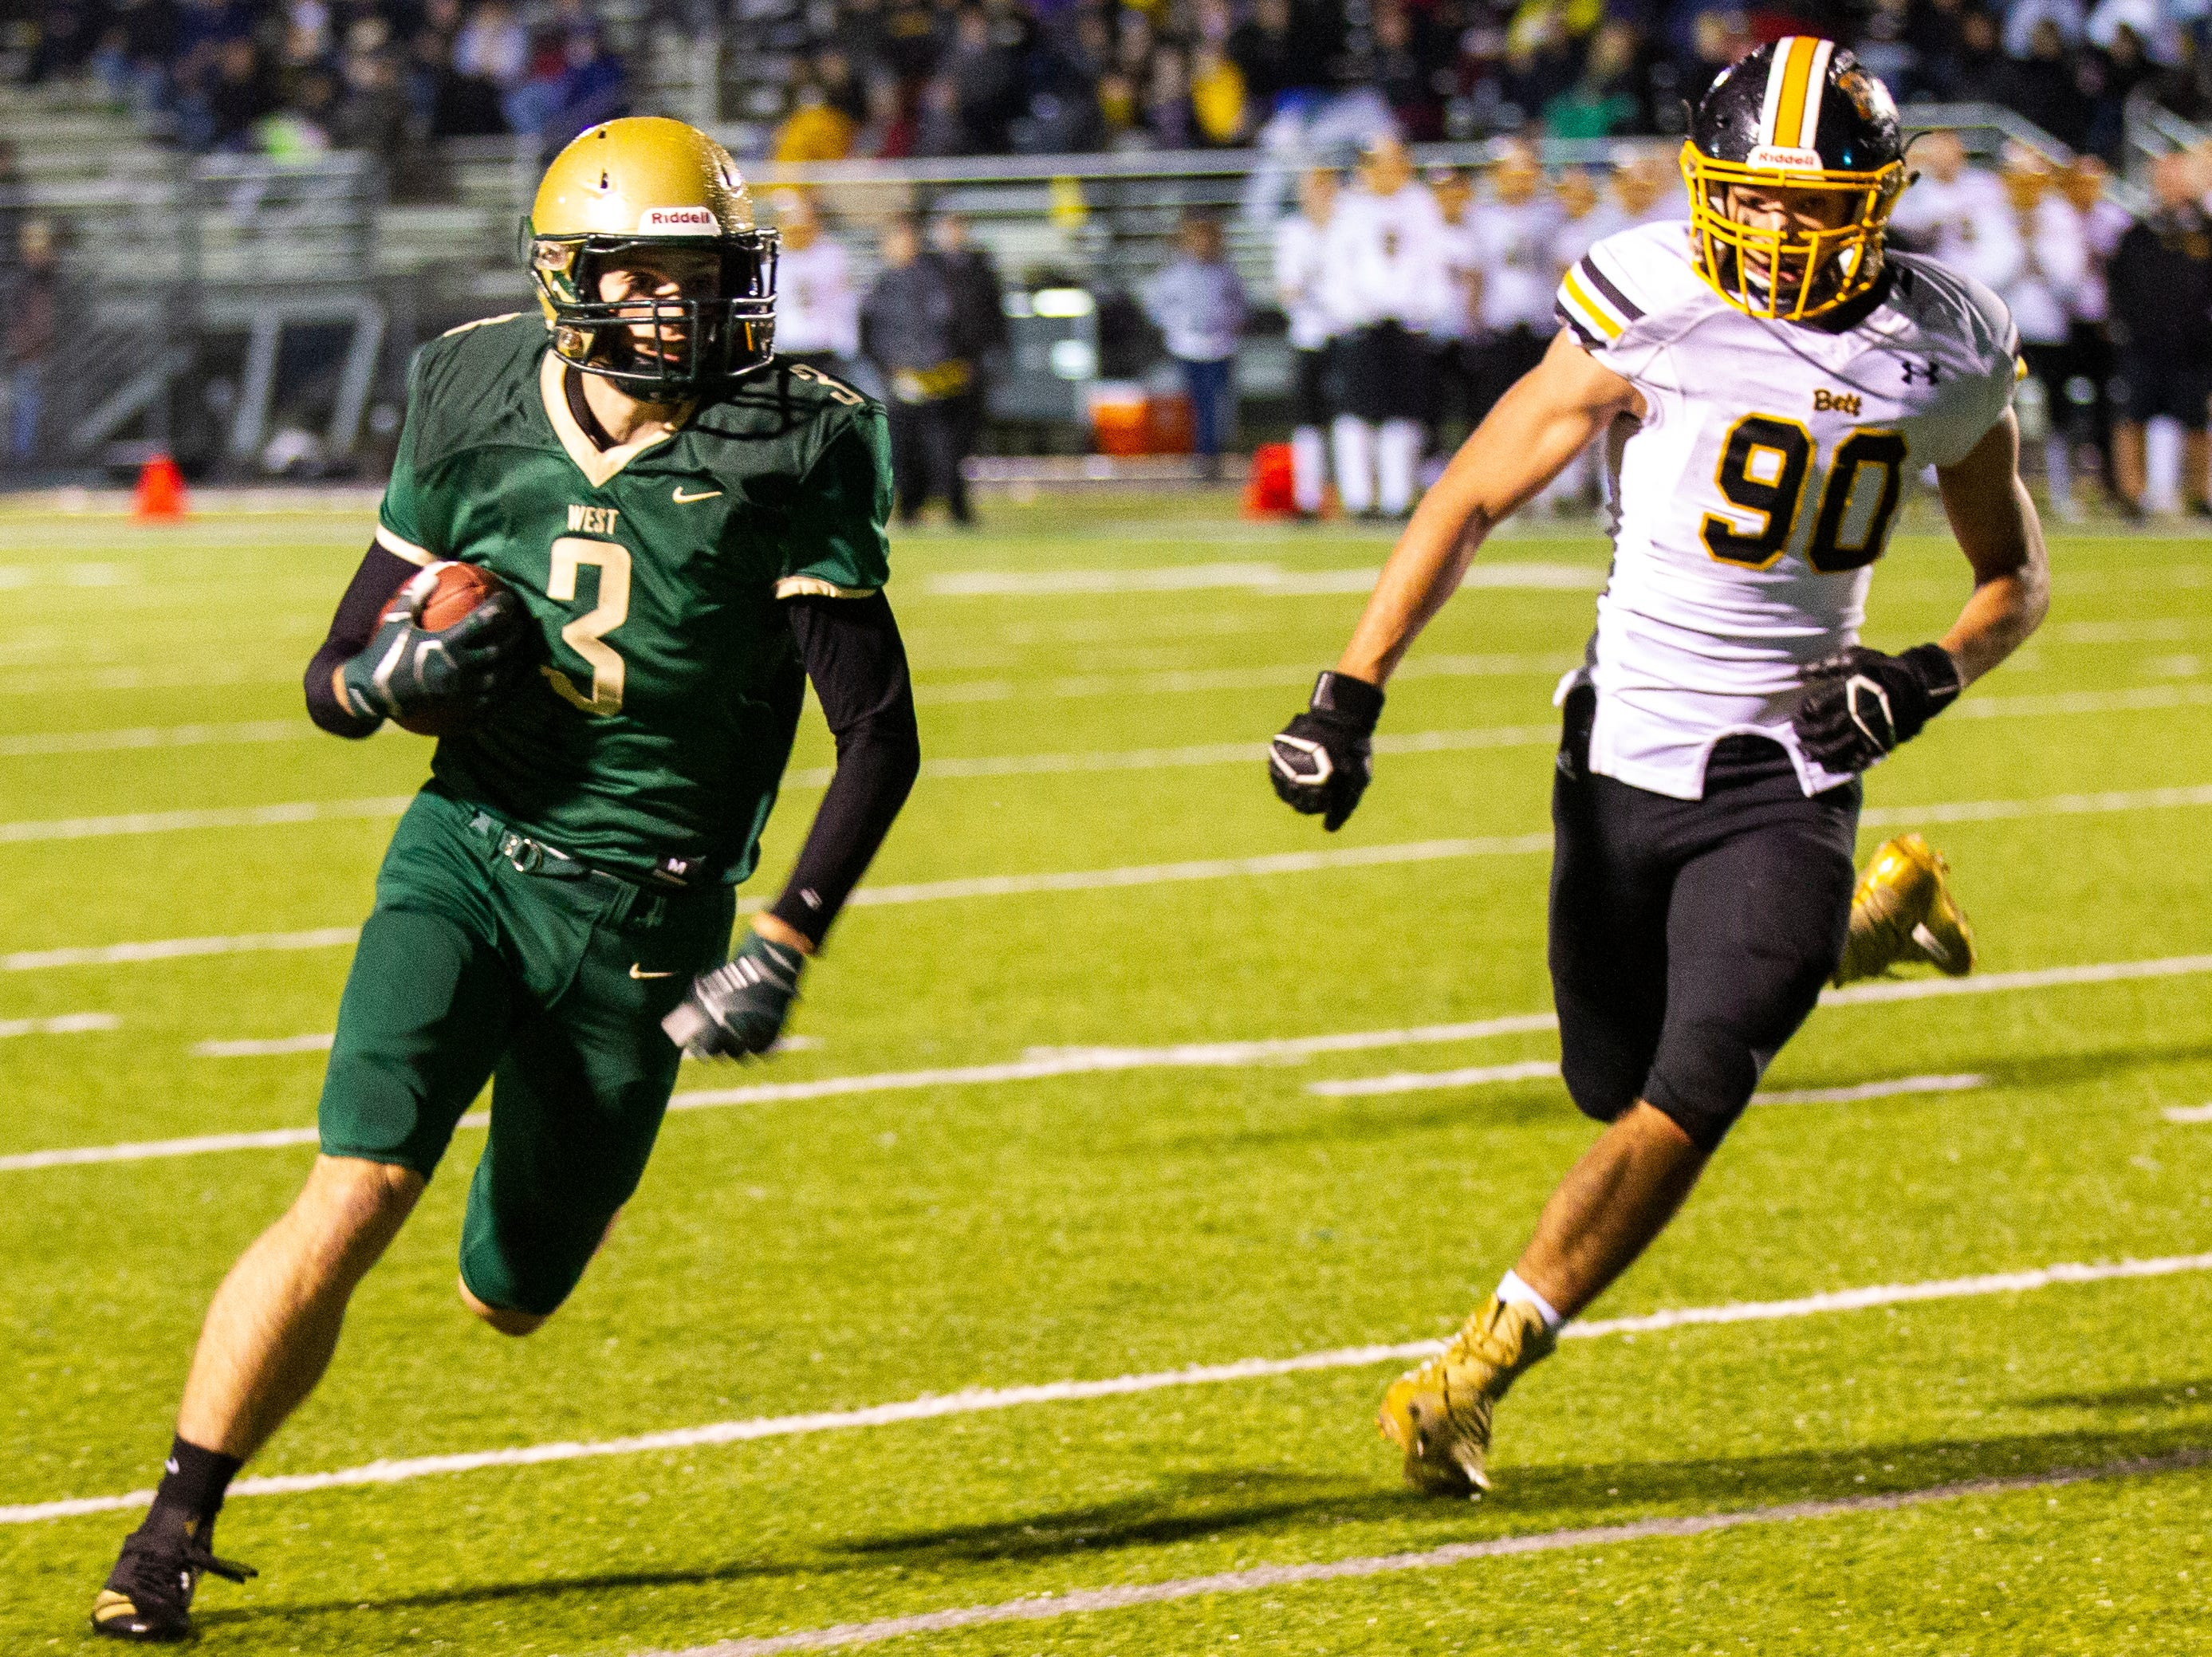 Iowa City West's Justin Thomas (3) runs for the goal line during a two point conversion during a Class 4A quarter final football game on Friday, Nov. 2, 2018, at Trojan Field in Iowa City.